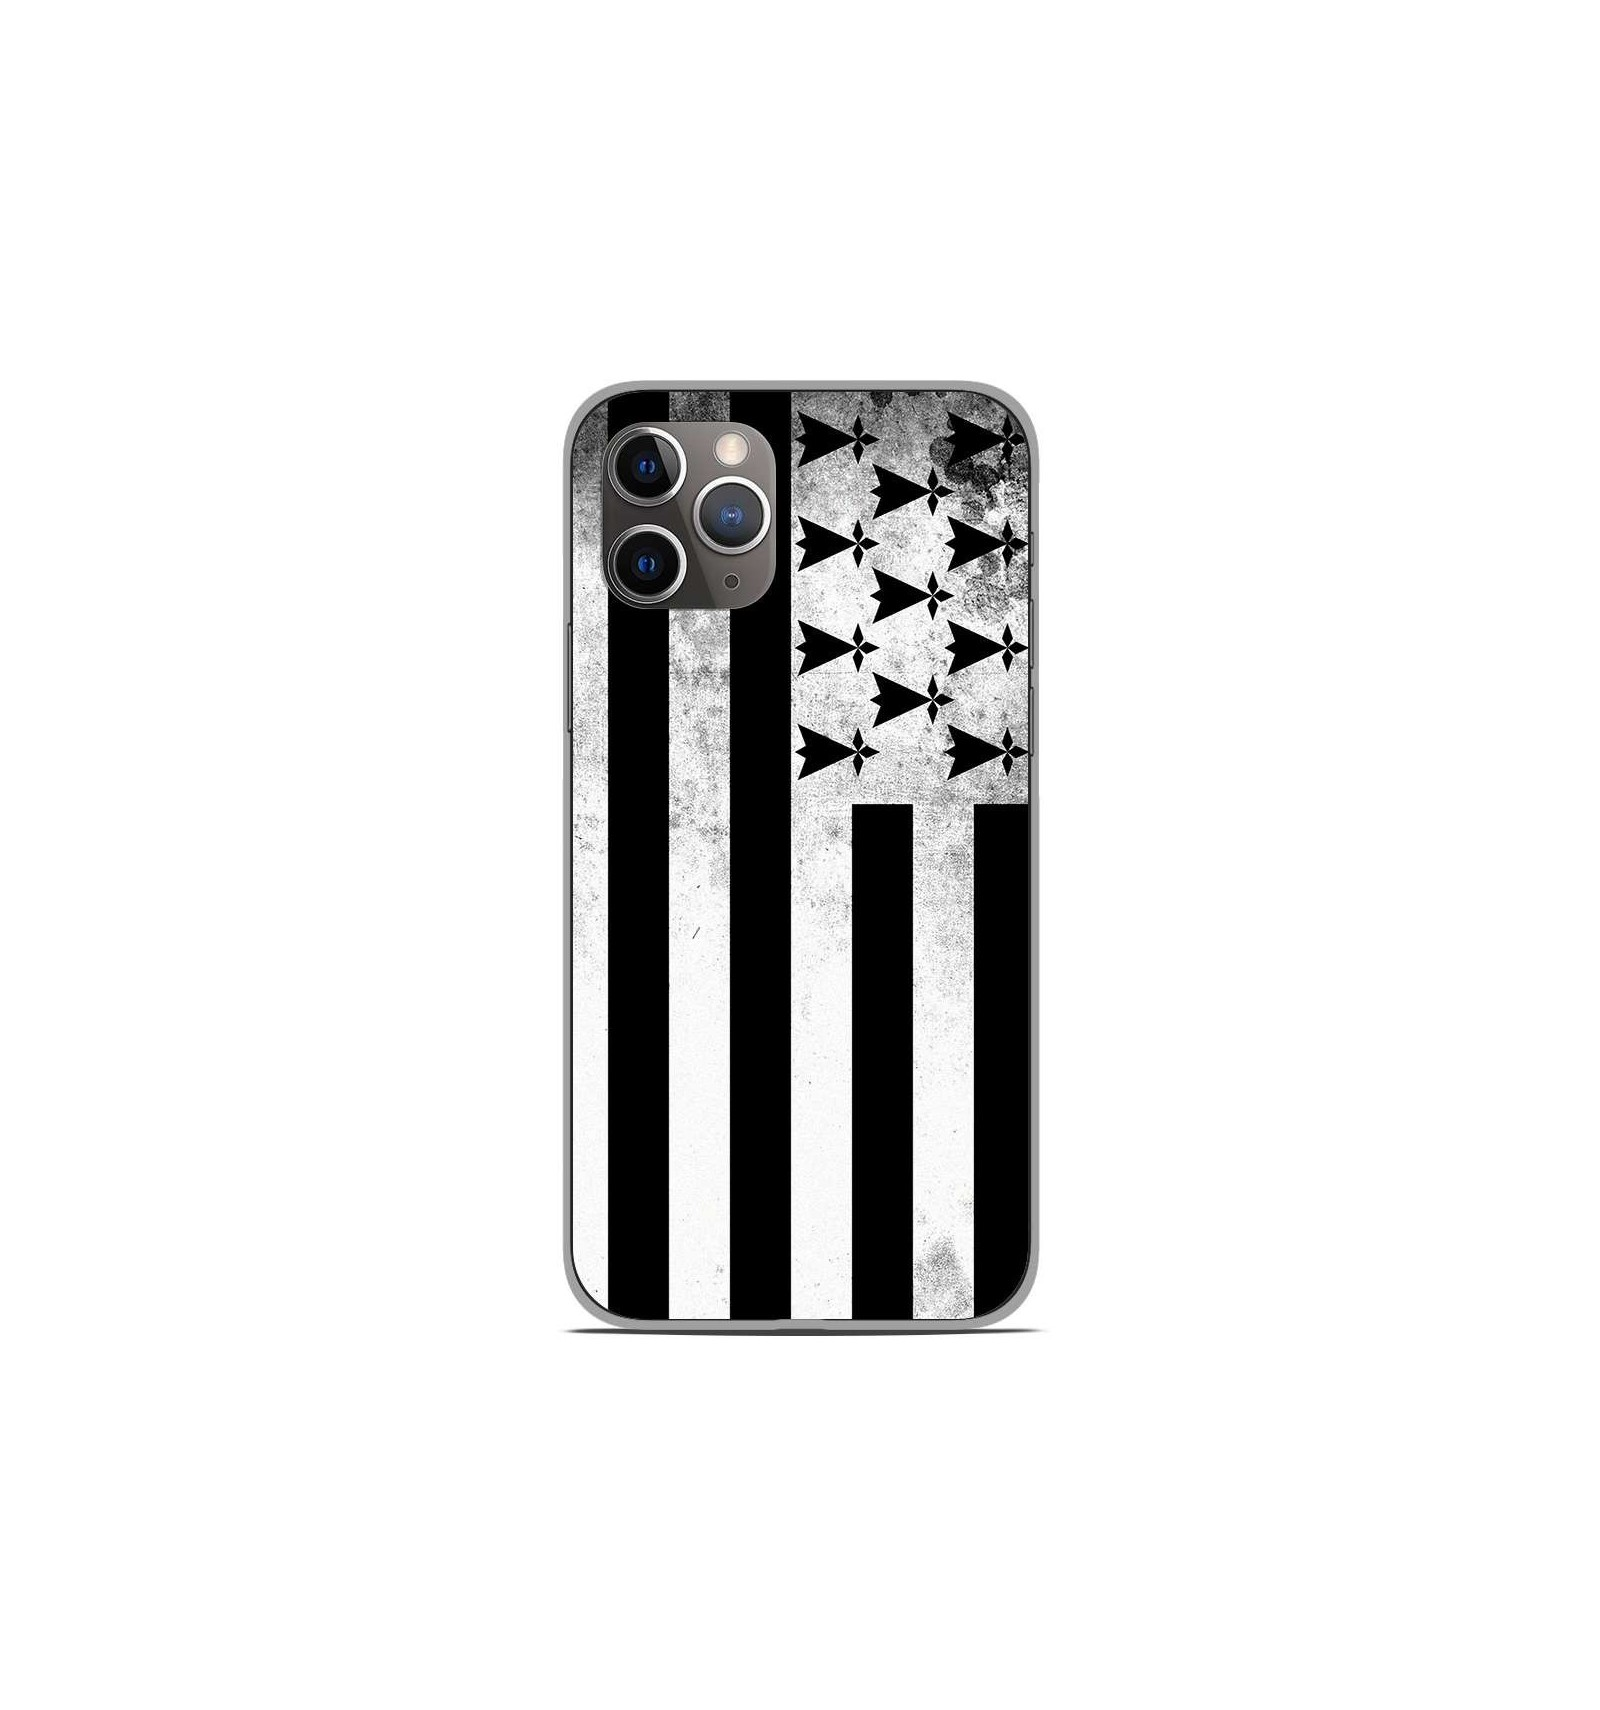 Coque Apple iPhone 11 pro max drapeau angleterre anglais rugby grande bretagne smartphone Euro foot made in France